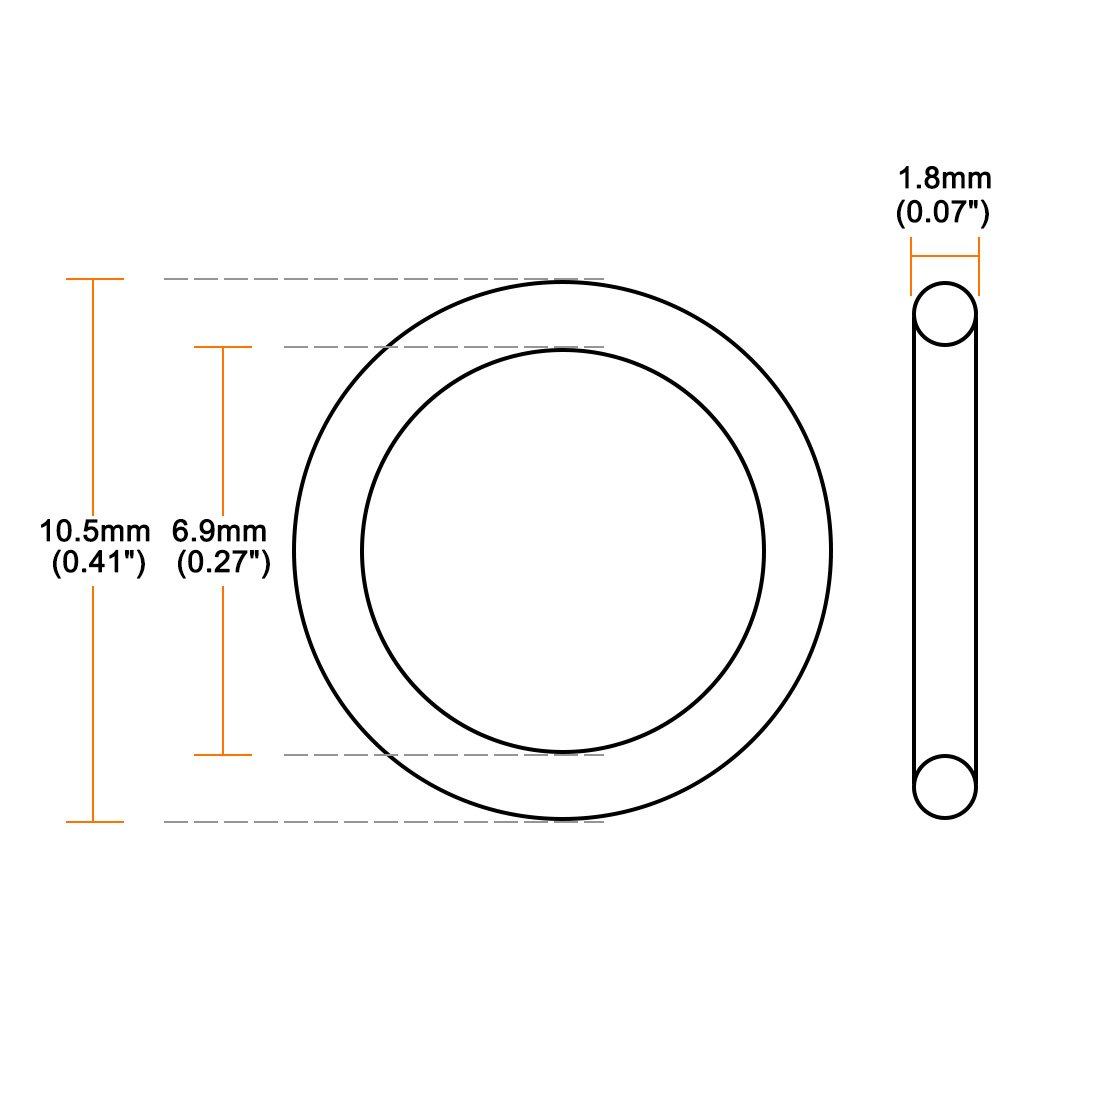 Round Seal Gasket 7.35mm OD Pack of 20 3.75mm Inner Diameter 1.8mm Width sourcing map O-Rings Nitrile Rubber